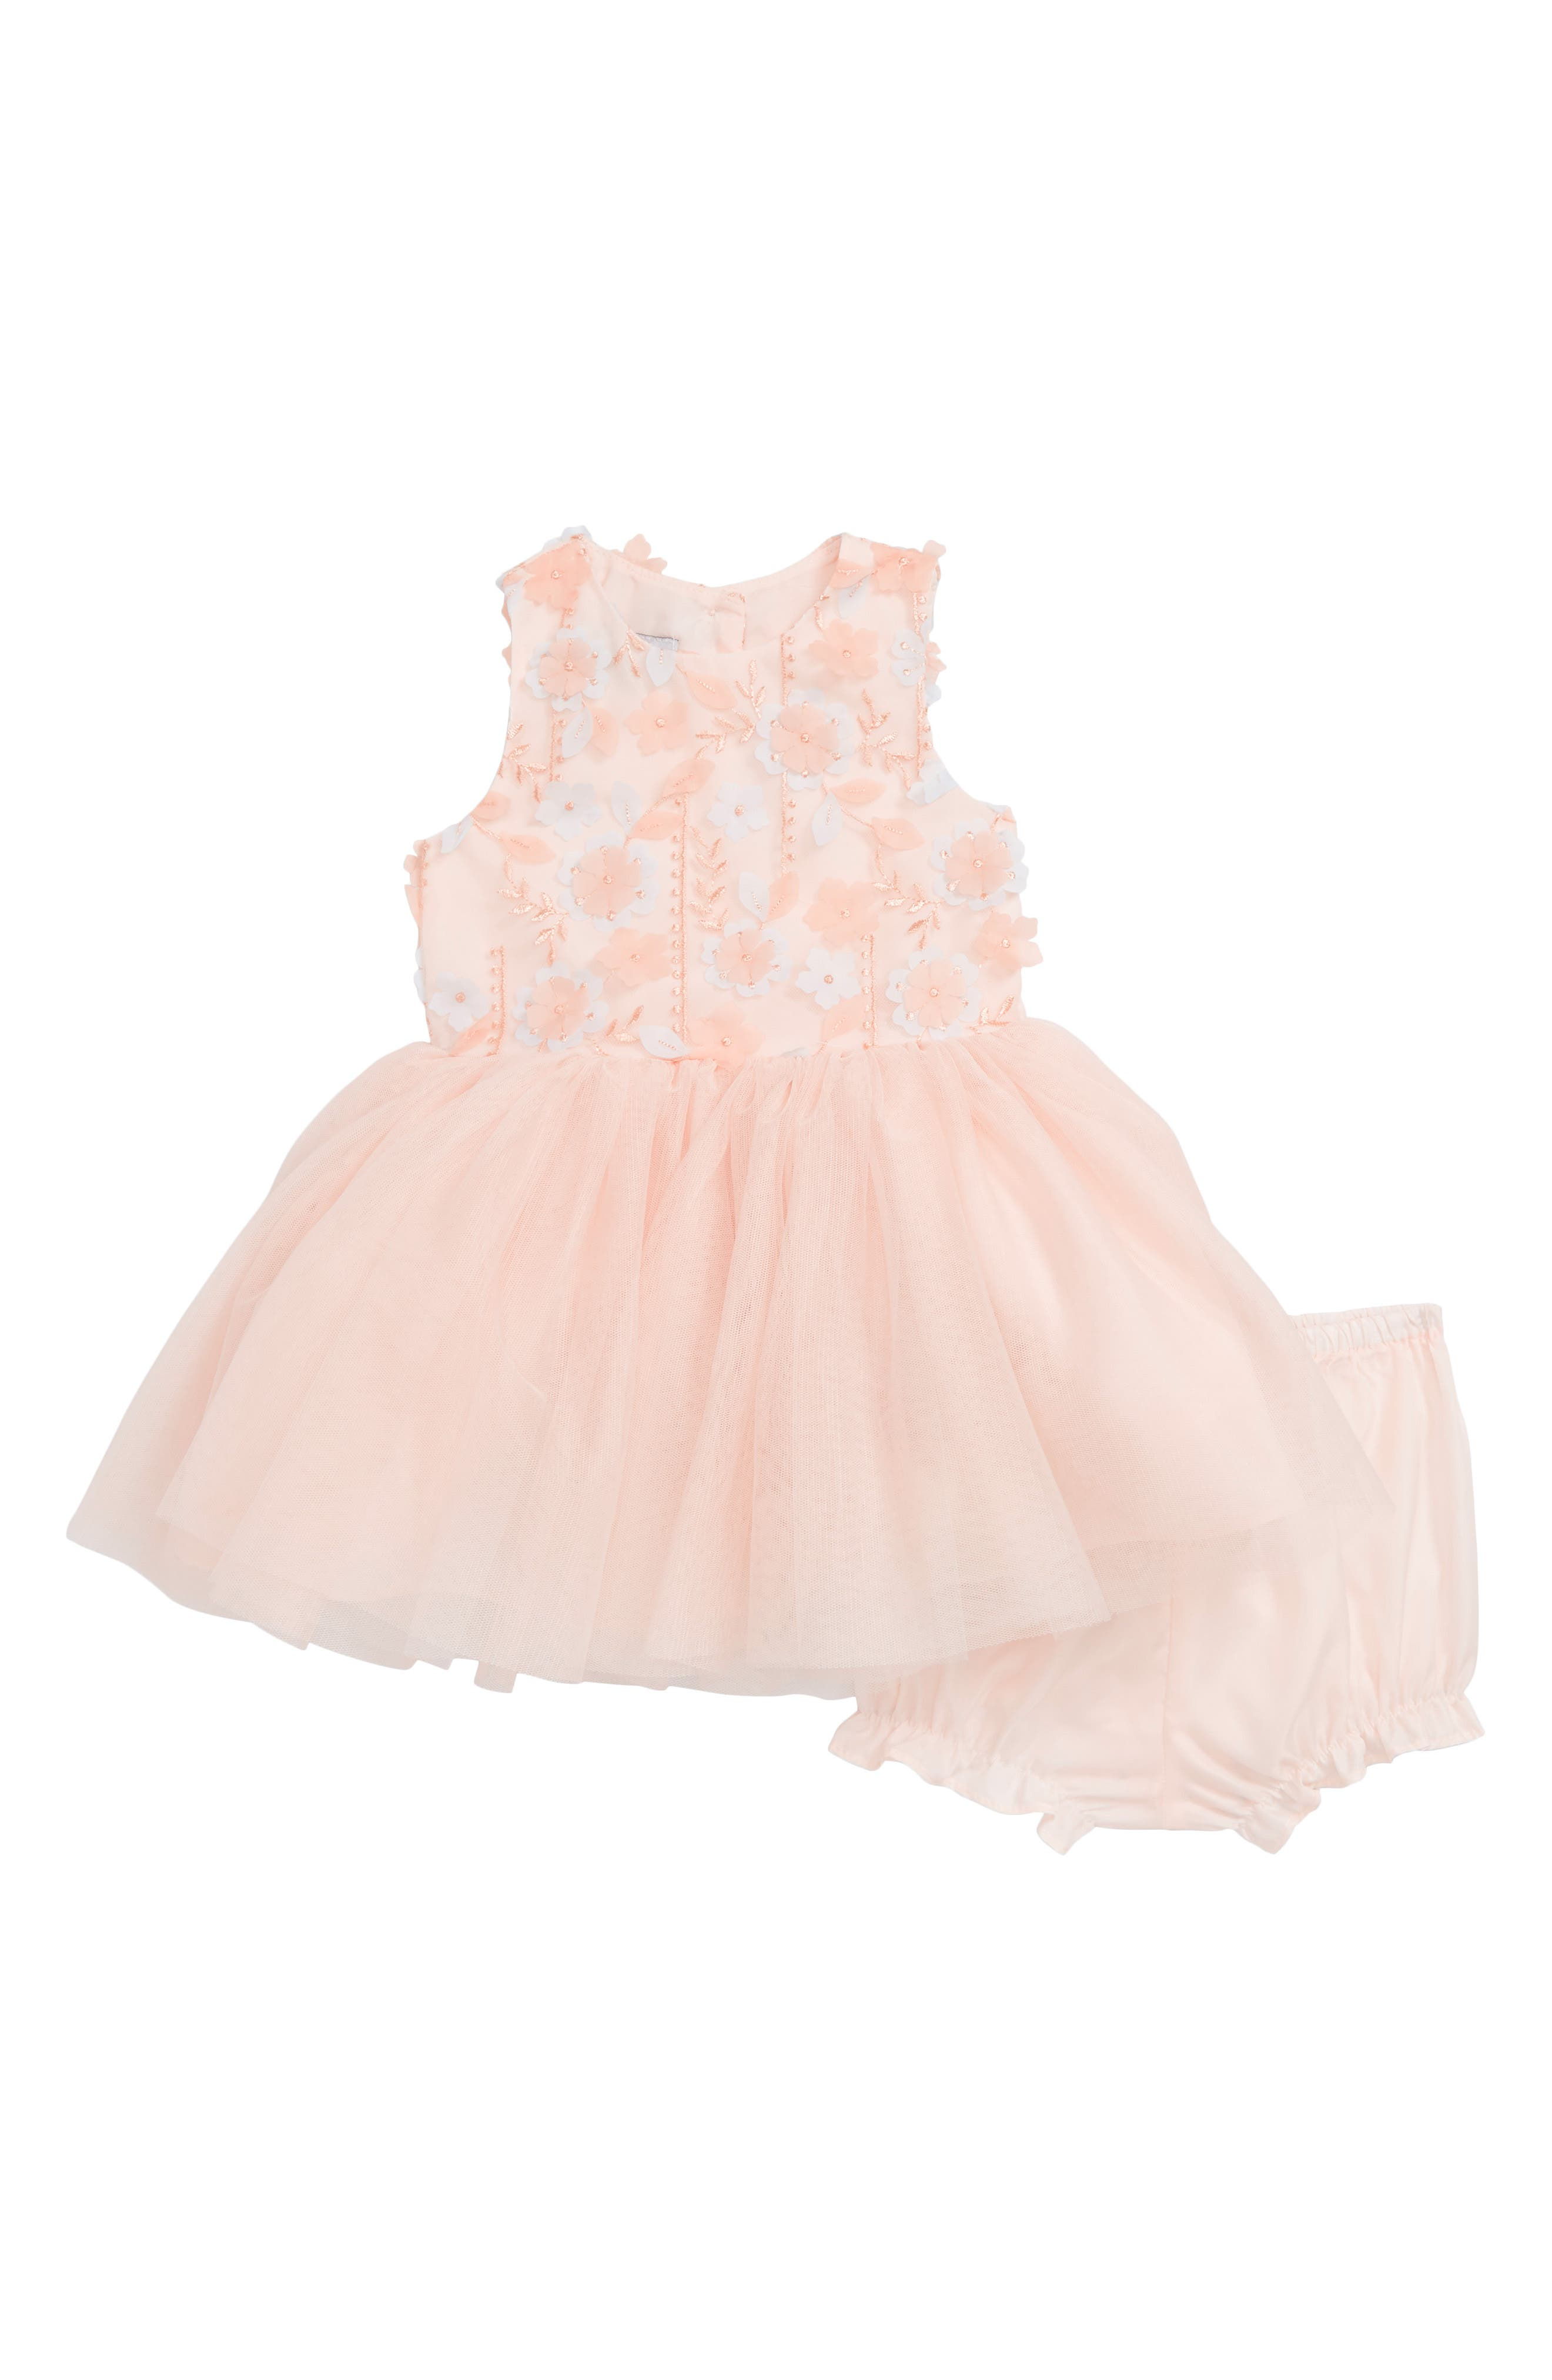 3D Flower Tutu Dress,                         Main,                         color, Peach/ Grey